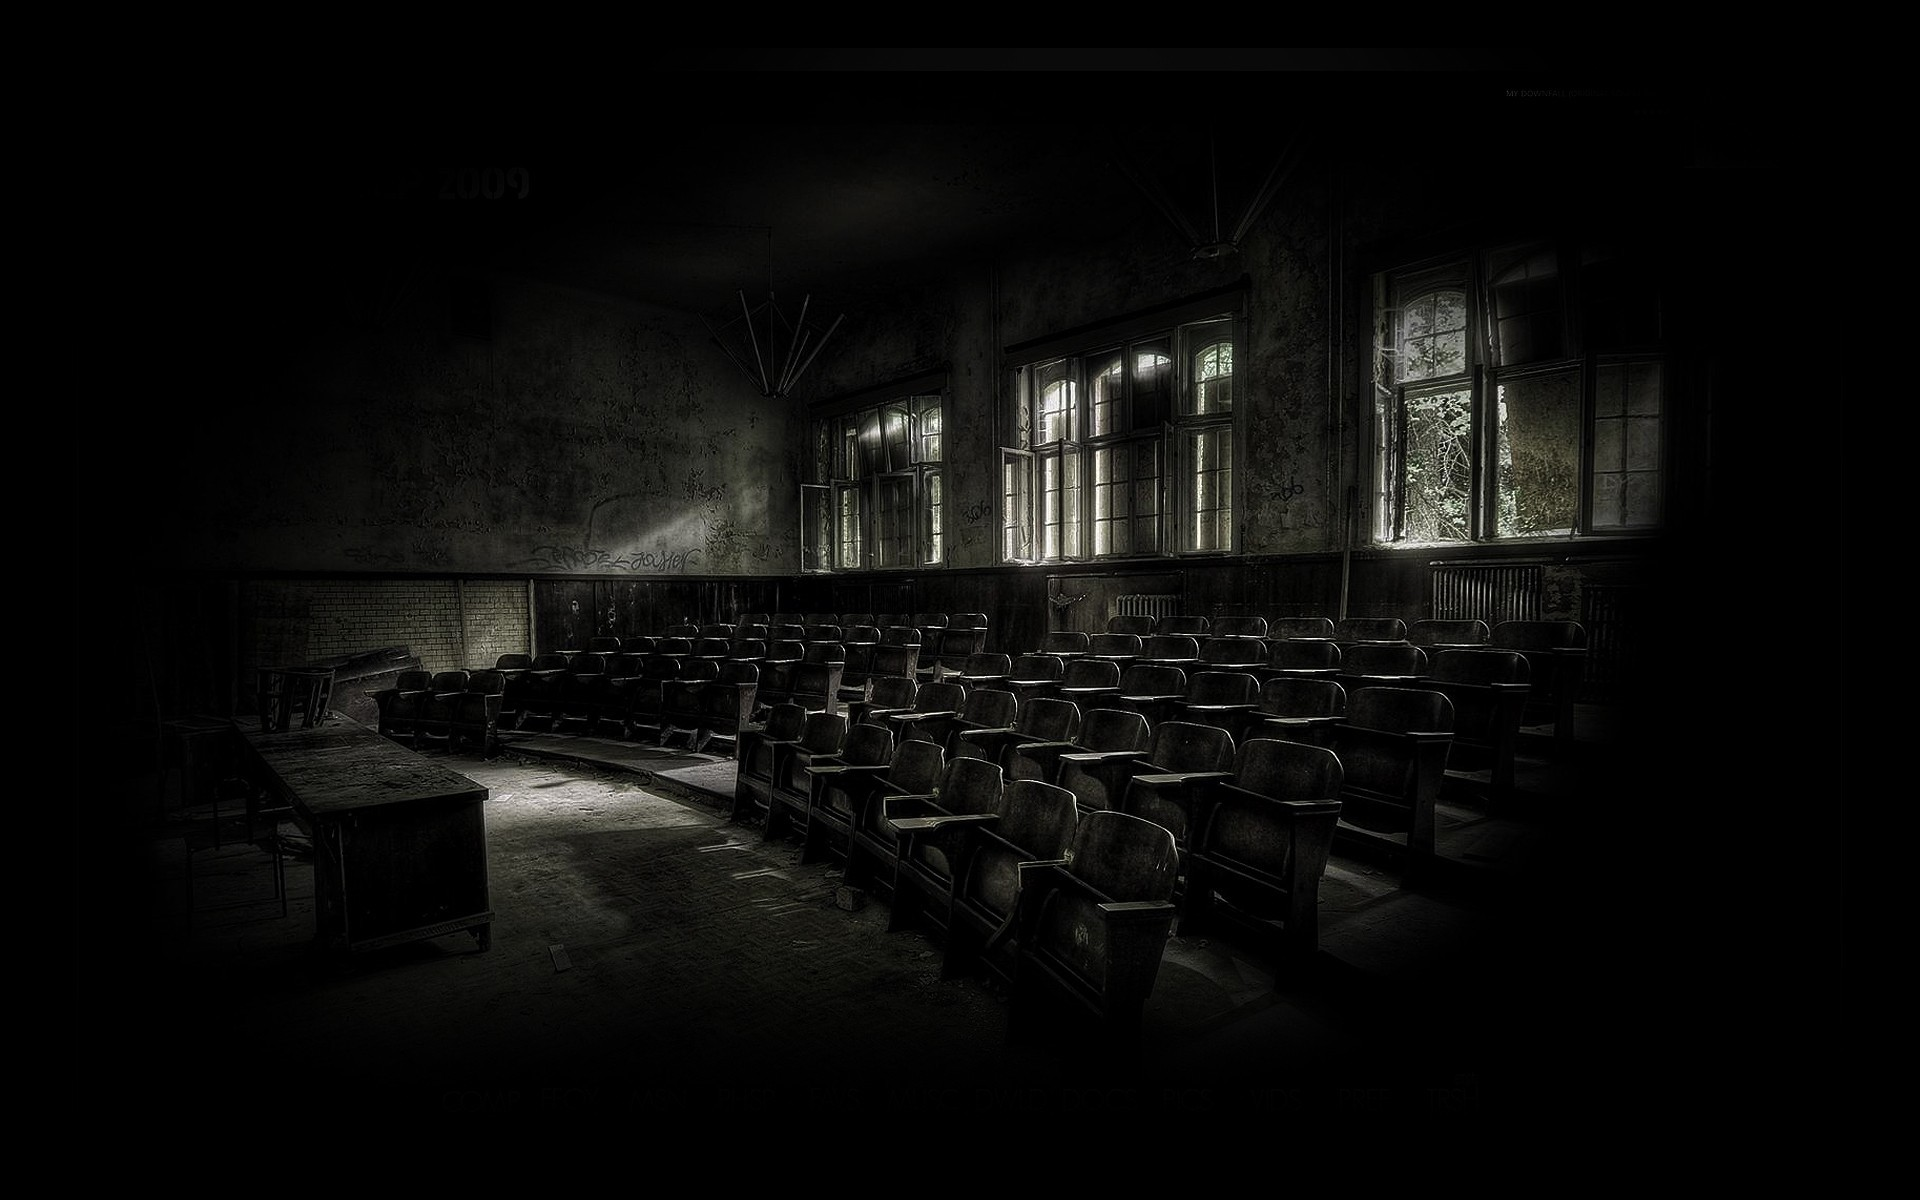 Sci Fi – Post Apocalyptic Abandoned Decay Wallpaper